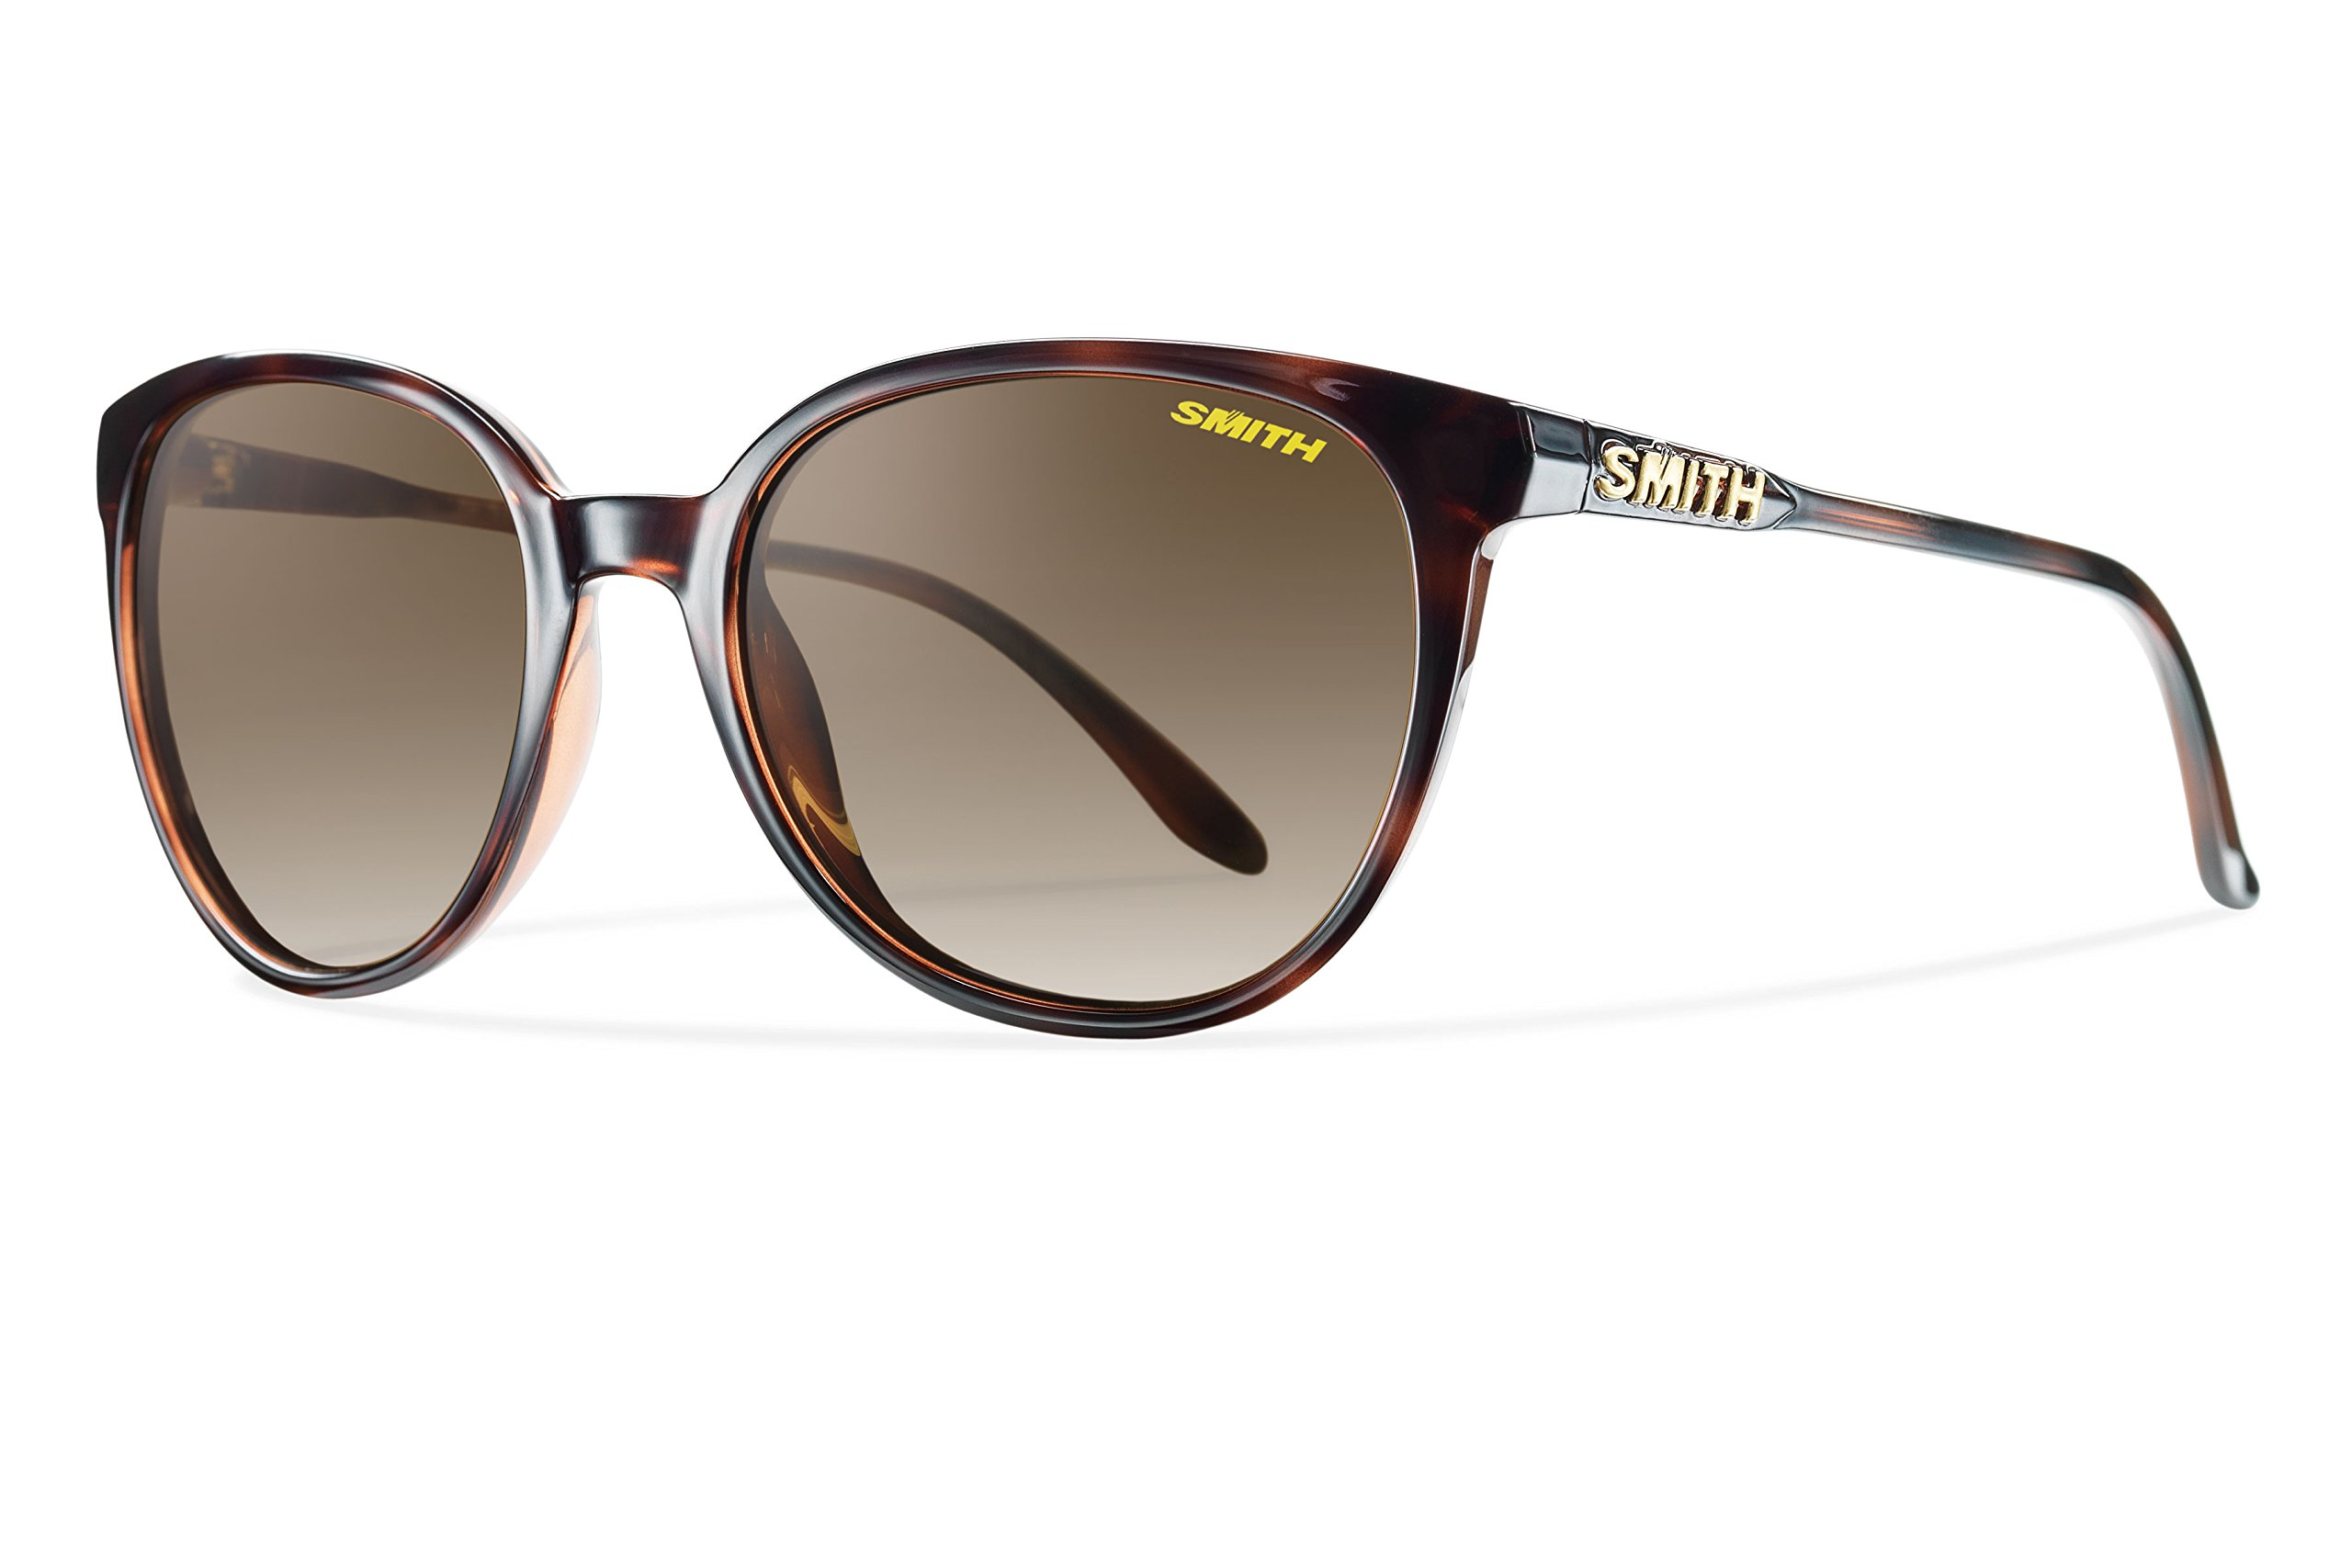 Smith Optics Cheetah Archive Polarized Sunglasses, Tortoise/Brown Gradient by Smith Optics (Image #1)